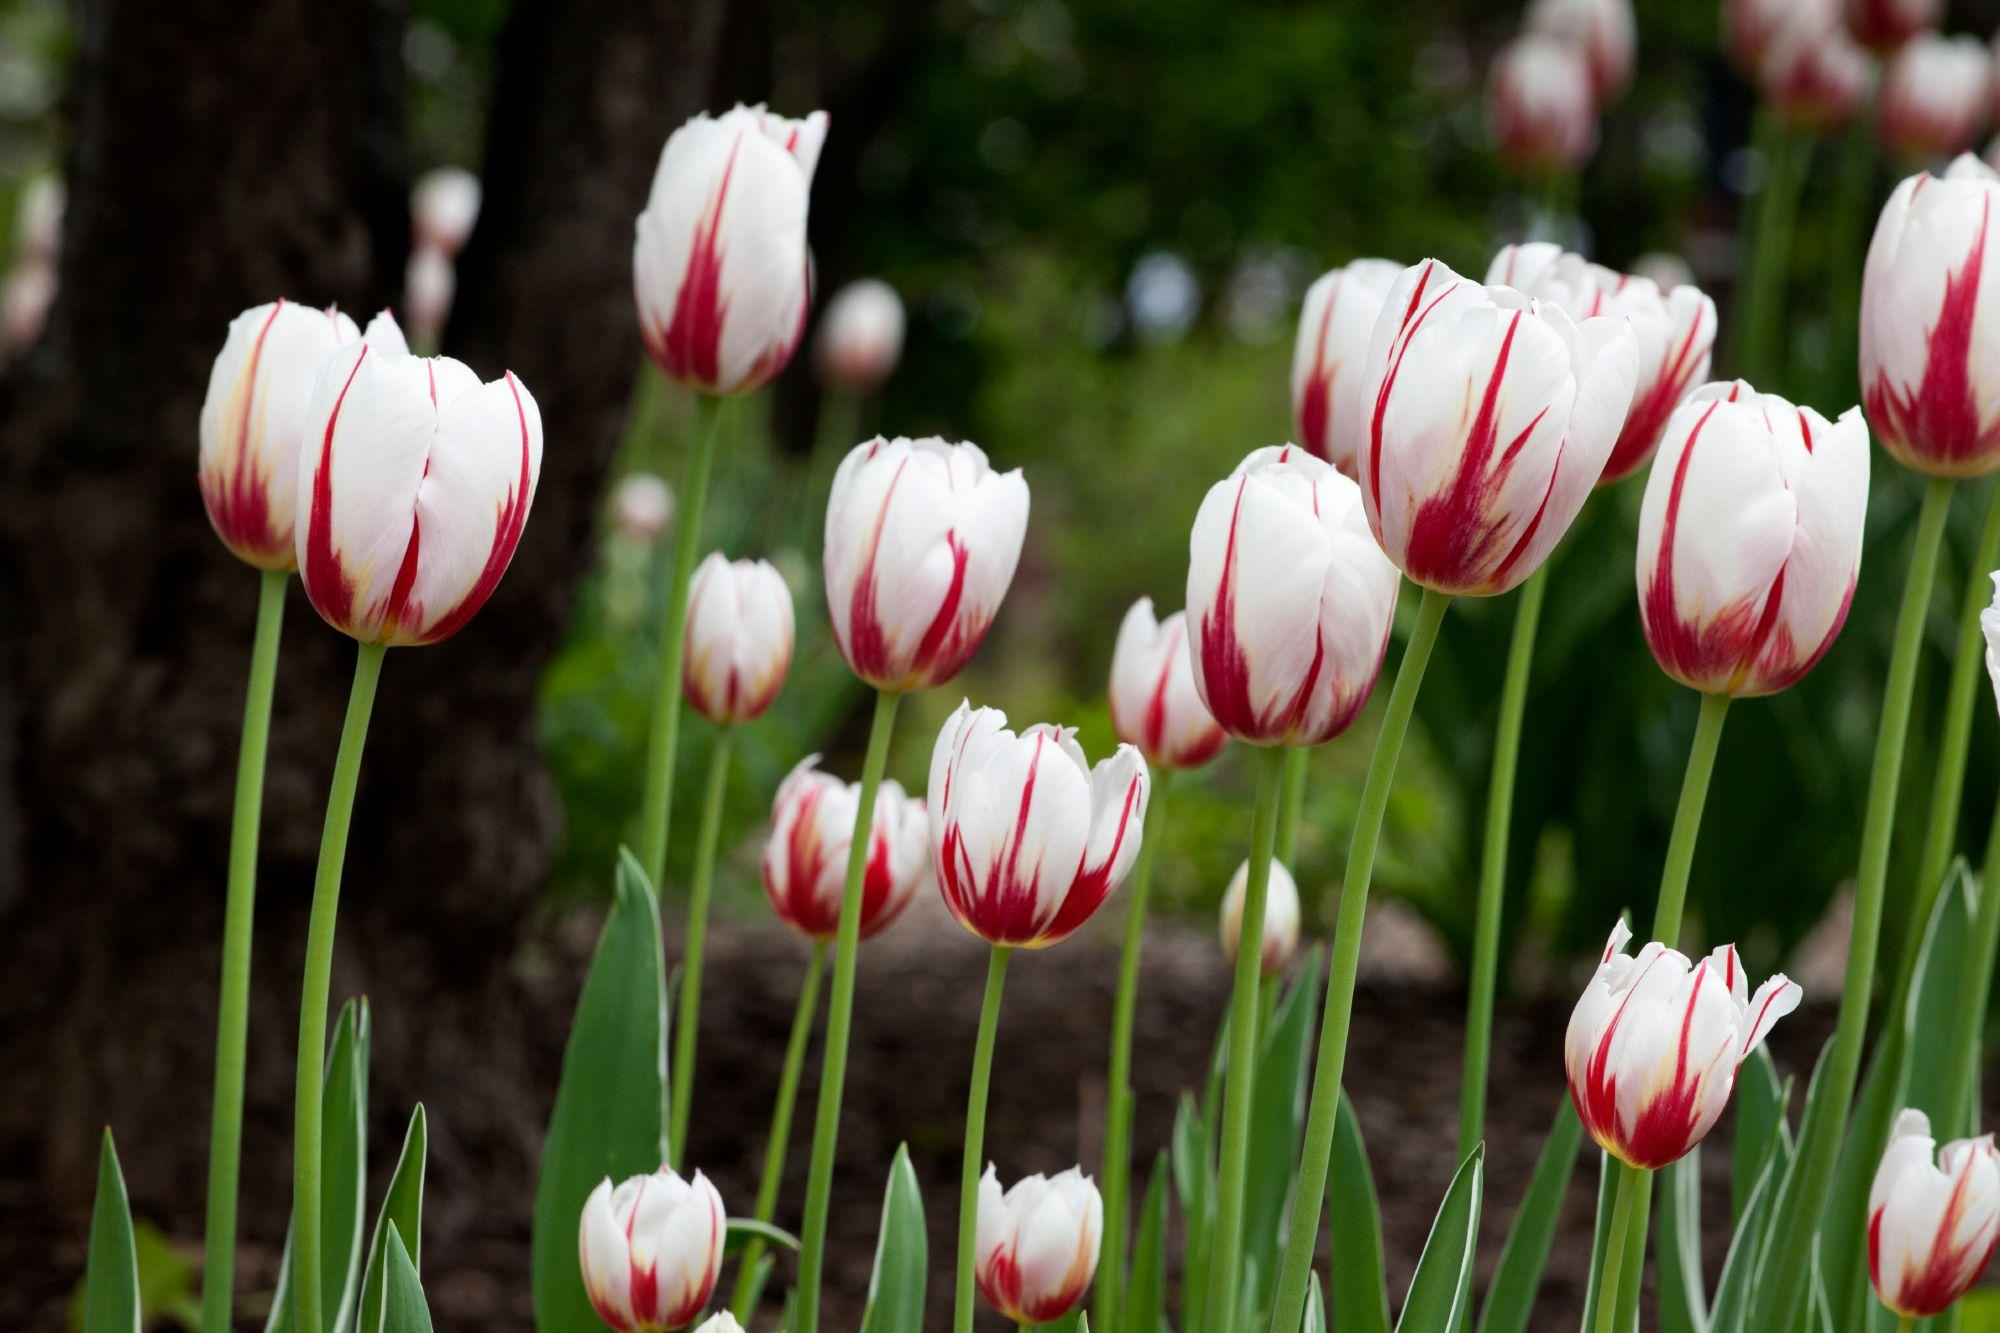 Introduction of a unique tulip species for Canada's 150th anniversary